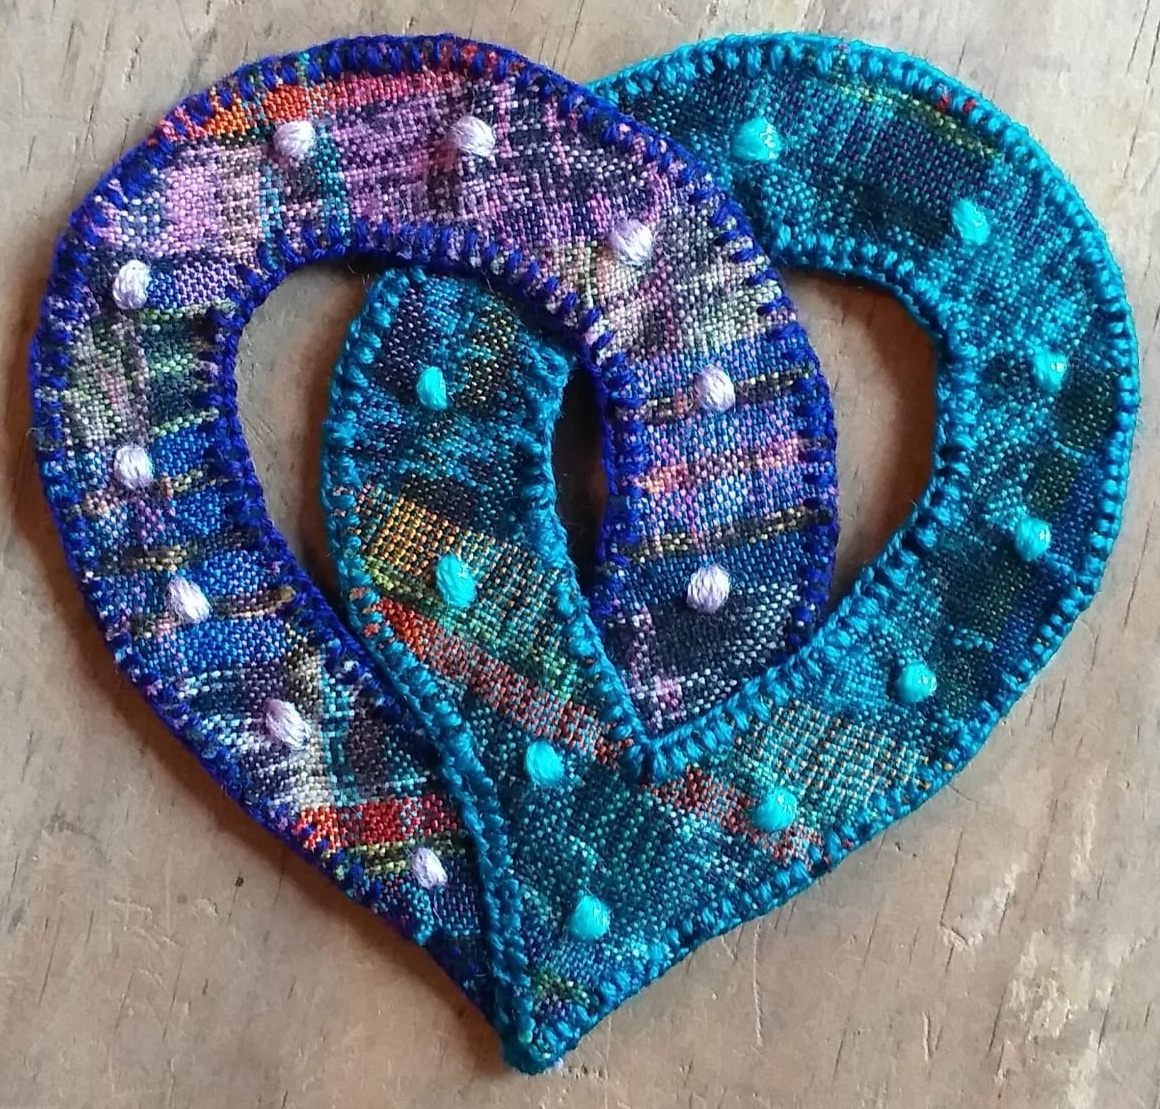 Hearts Interlocking Patch - Felt and Repurposed Traditional Fabric